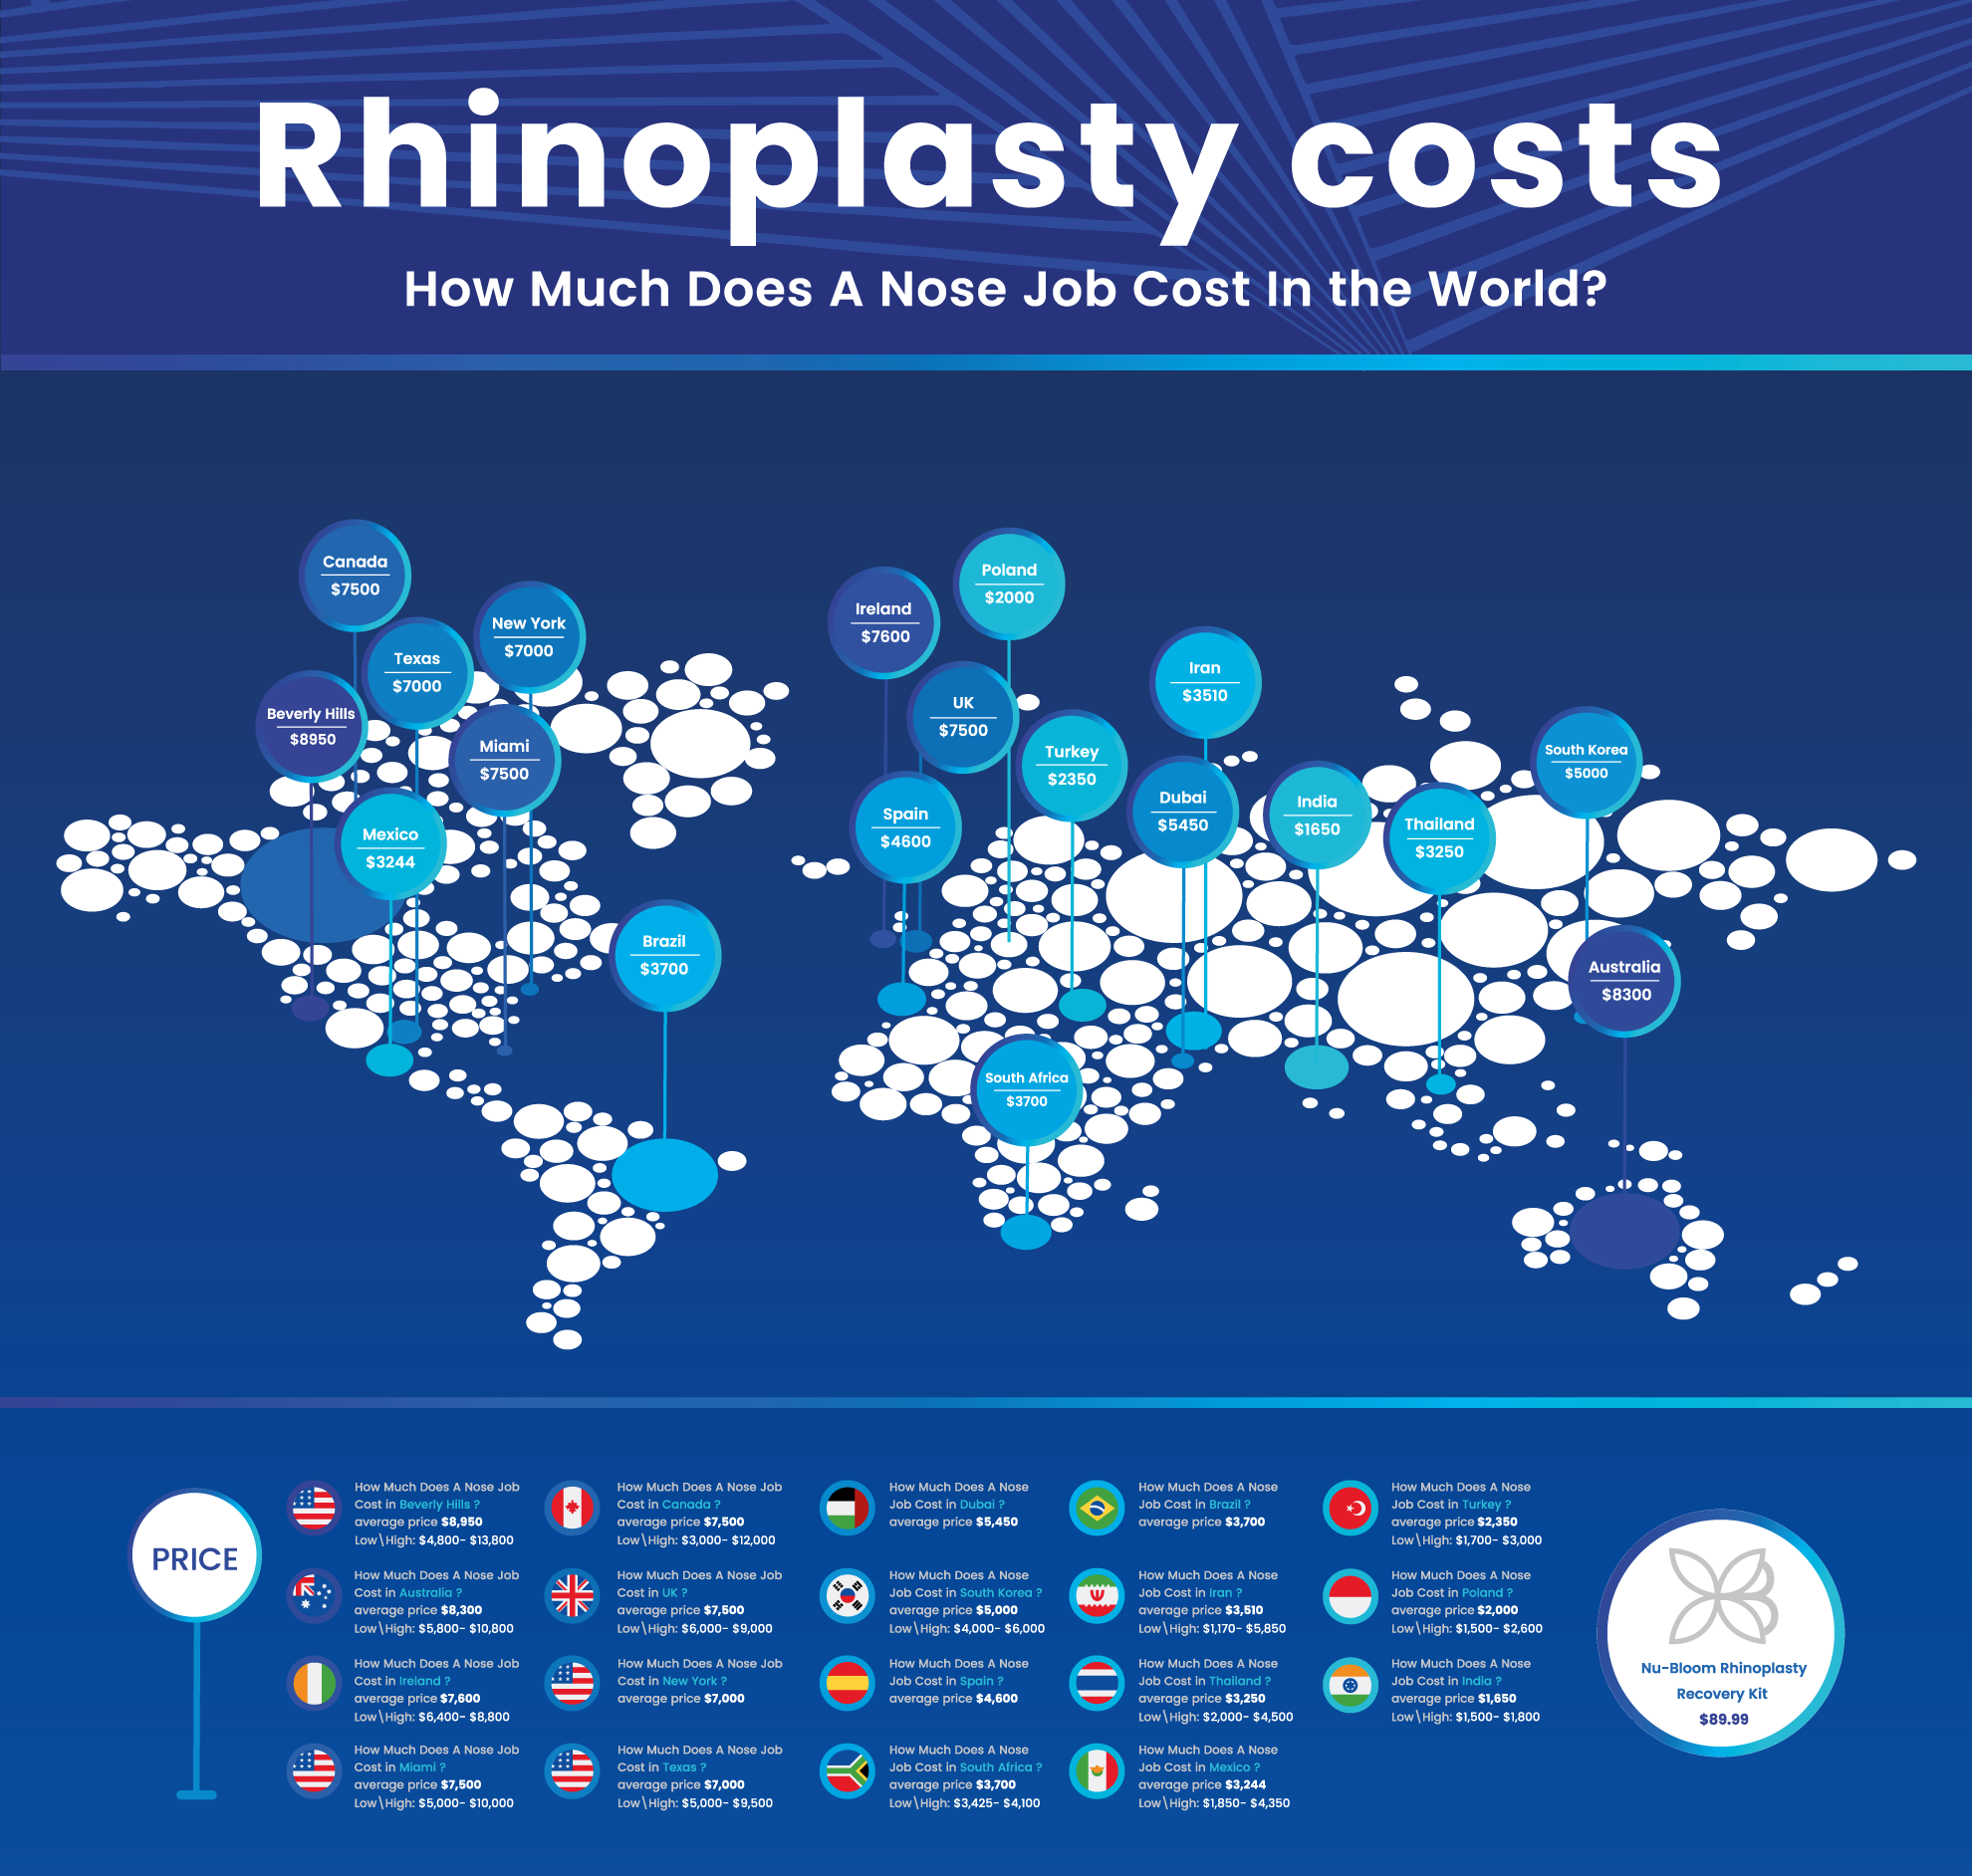 Rhinoplastry cost infographic